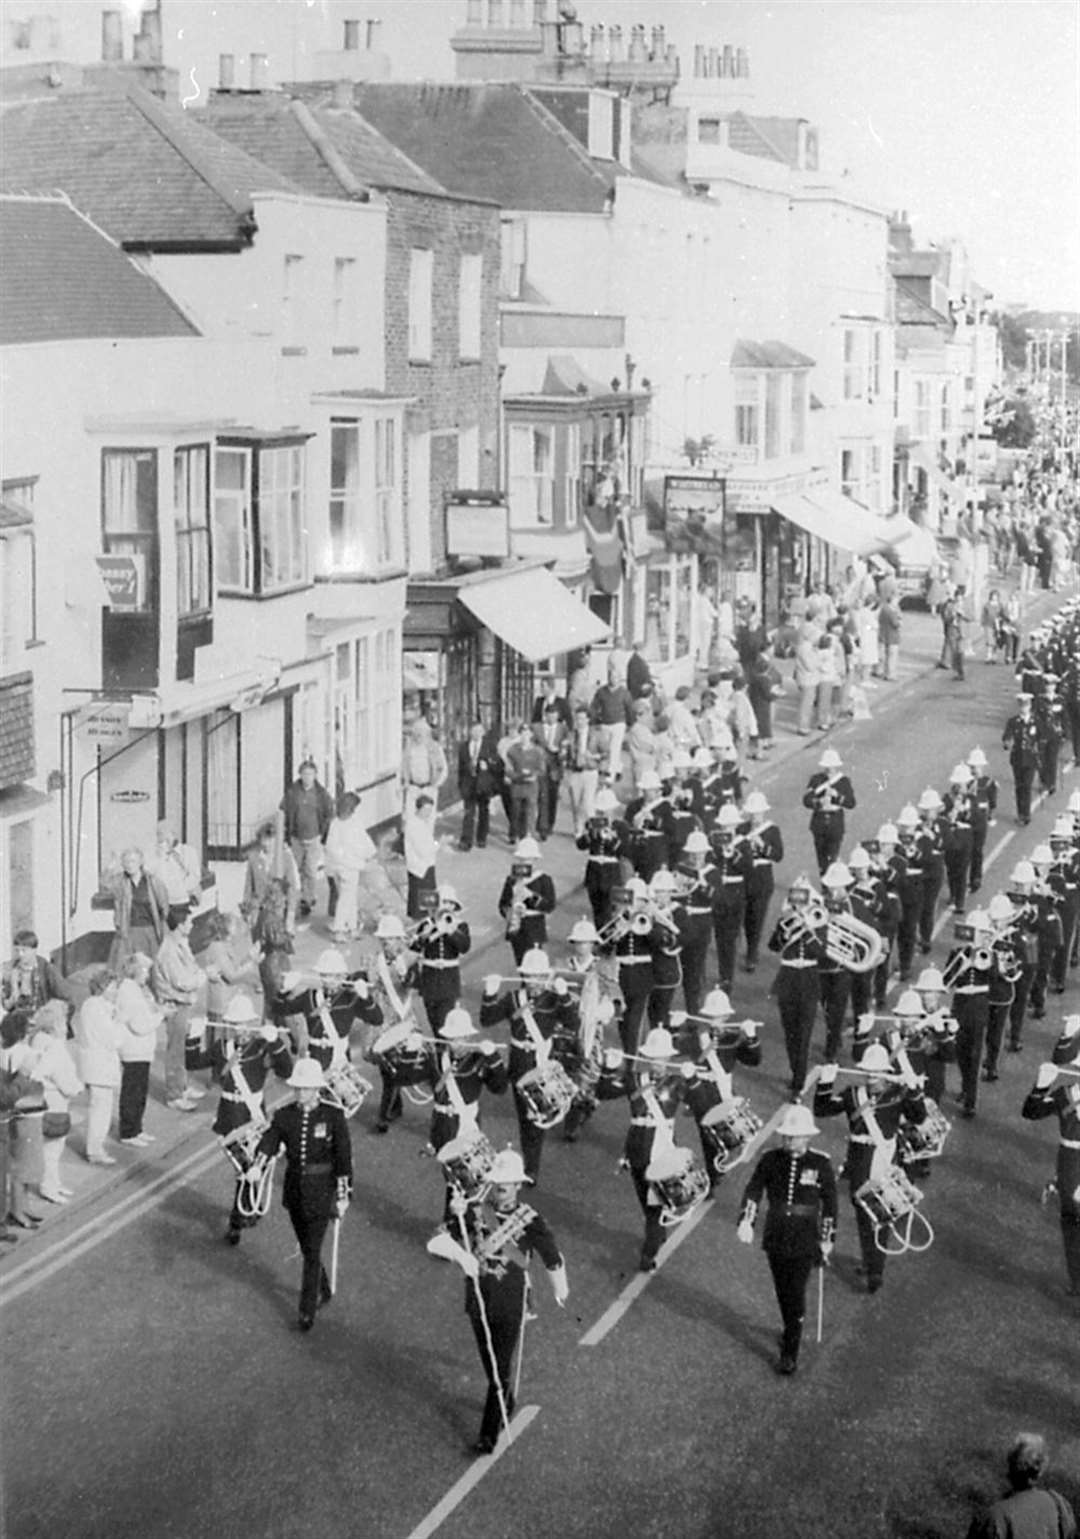 Townpeople watched as the band marched through the streets of Deal leaving empty spaces for those killed